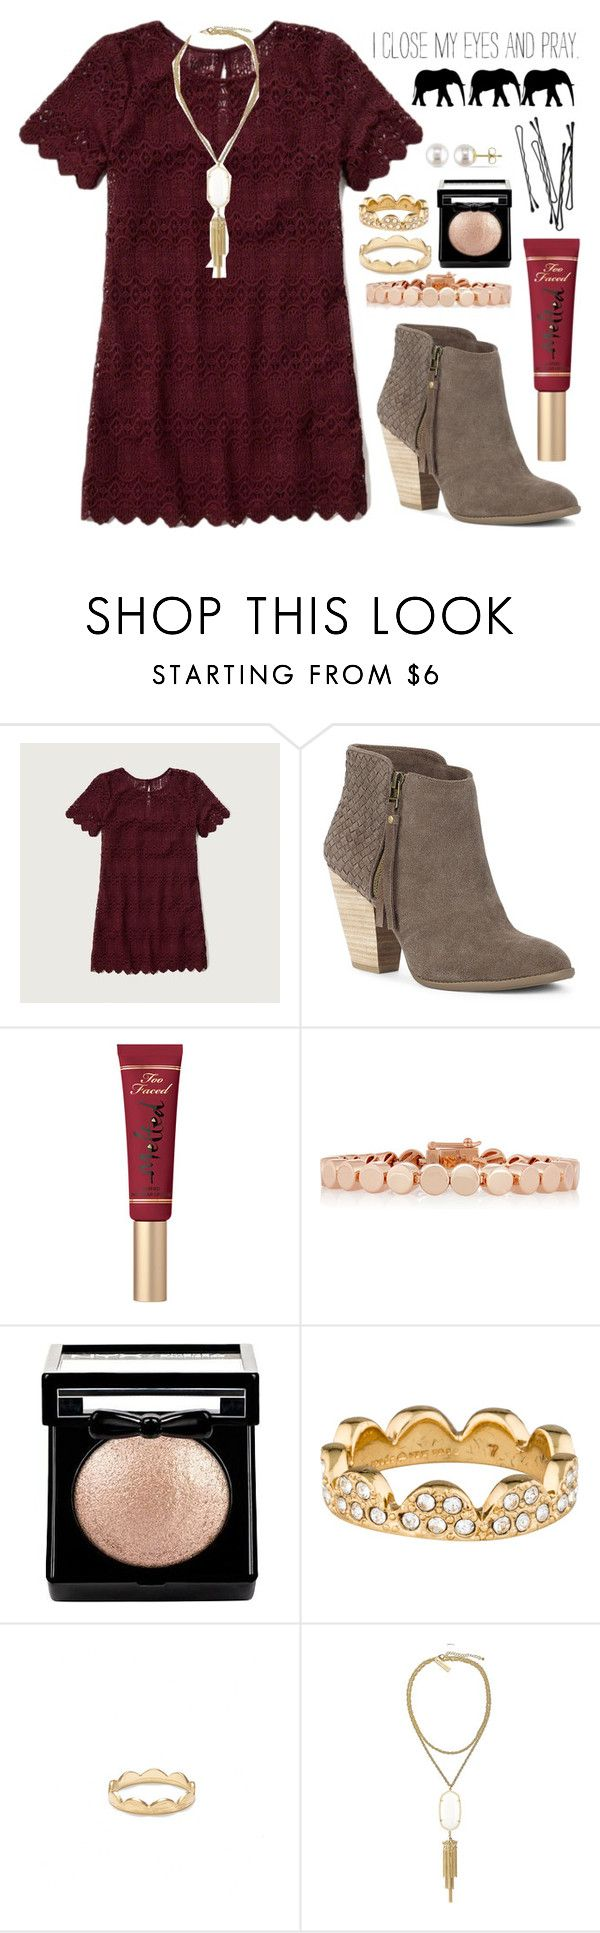 """❄️"" by ansleighrose023 ❤ liked on Polyvore featuring Abercrombie & Fitch, Sole Society, Eddie Borgo, Kate Spade, Jeweliq, Kendra Scott, BOBBY, Miadora and Justin Bieber"